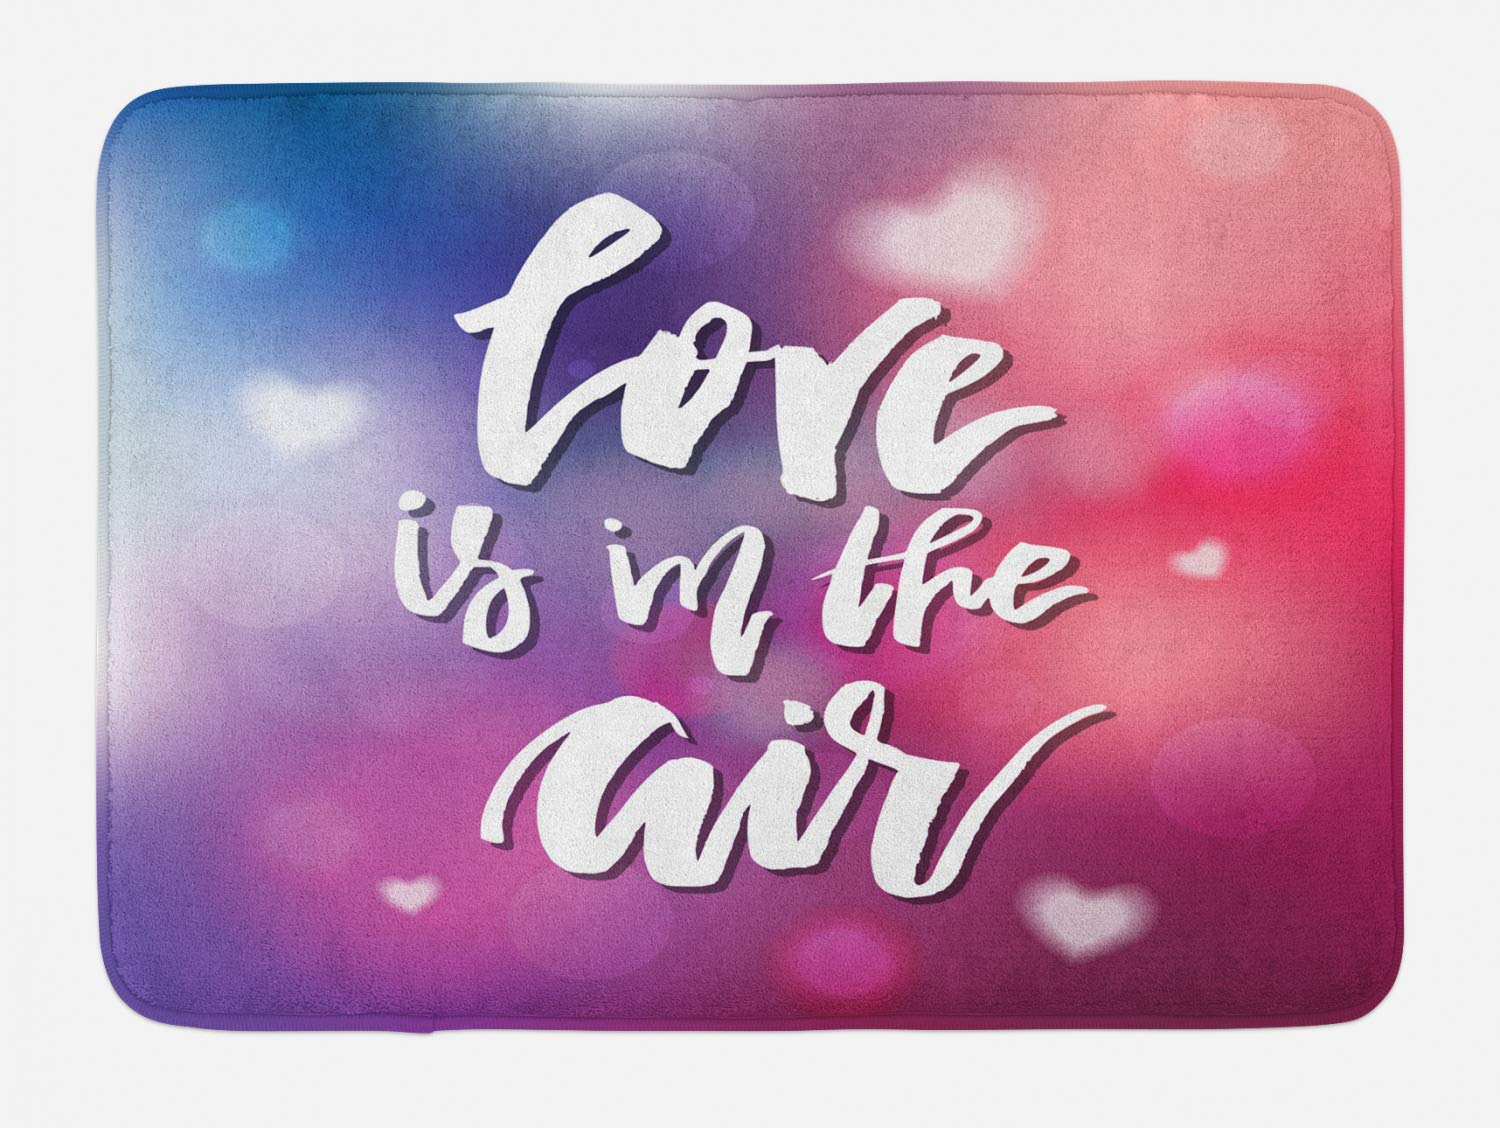 Love is in The Air Hand Drawn Typographic Inscription on Blurry Backdrop with Hearts Plush Bathroom Decor Mat with Non Slip Backing,46.8'' W by 62.4'' L